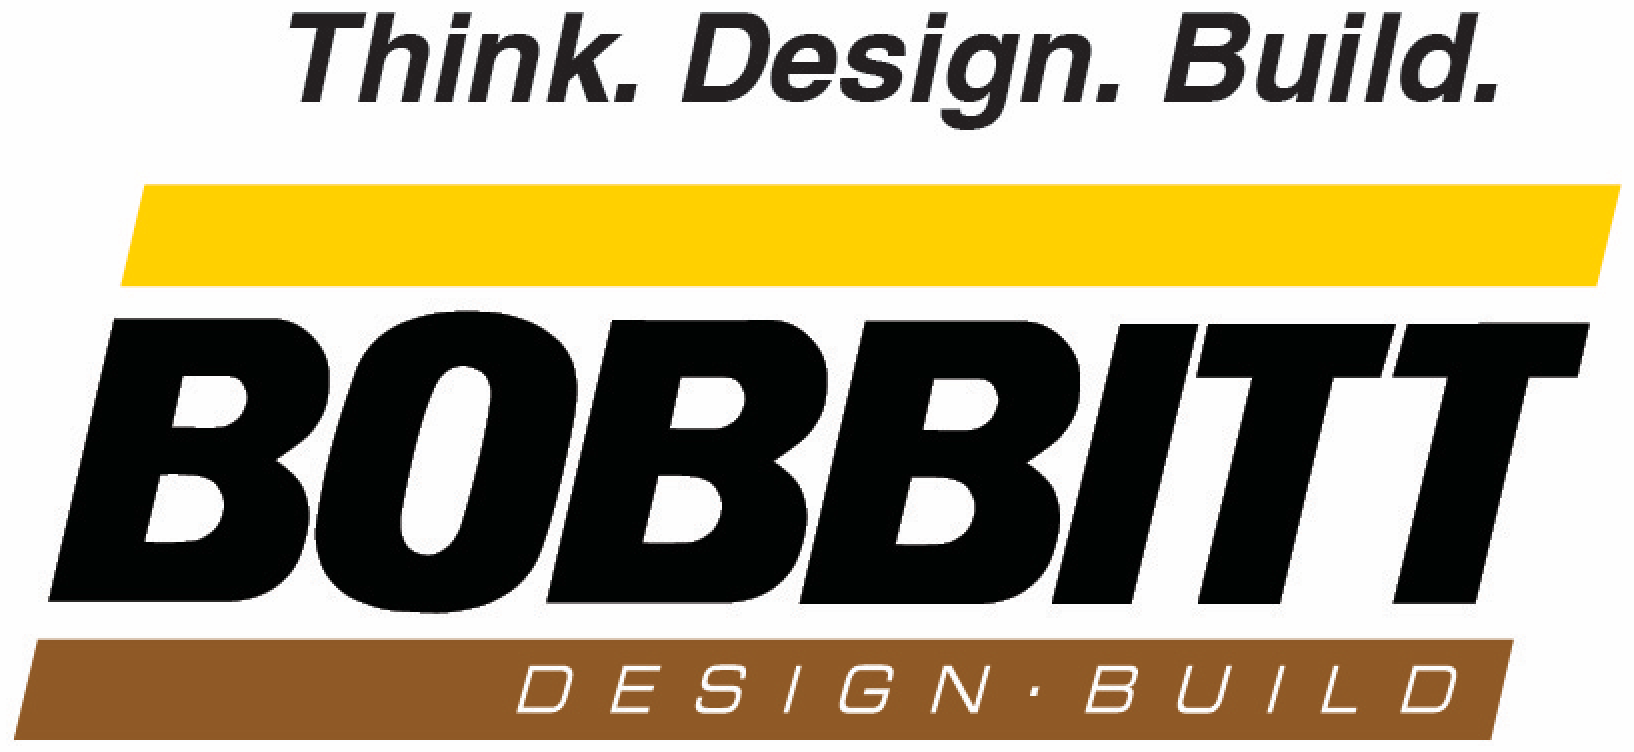 Bobbitt Design-Build logo